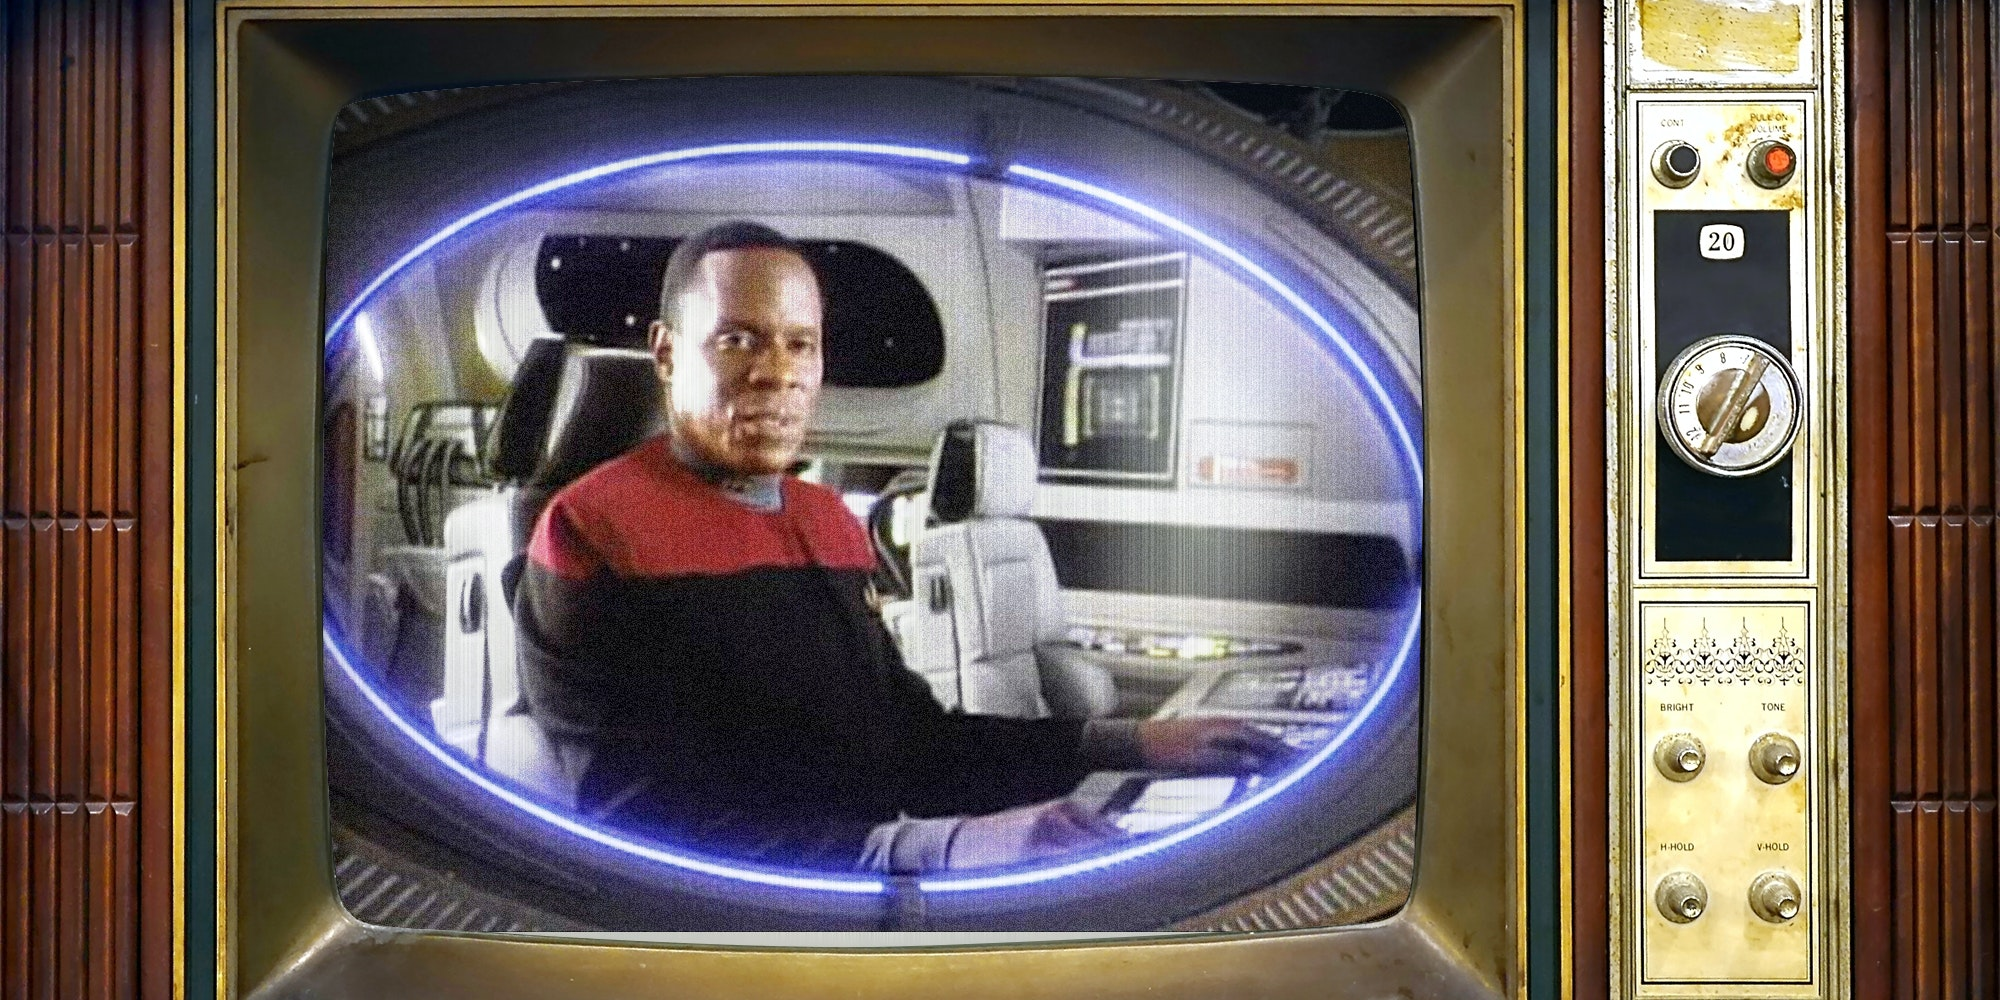 Star Trek: Deep Space 9 on old analog television set